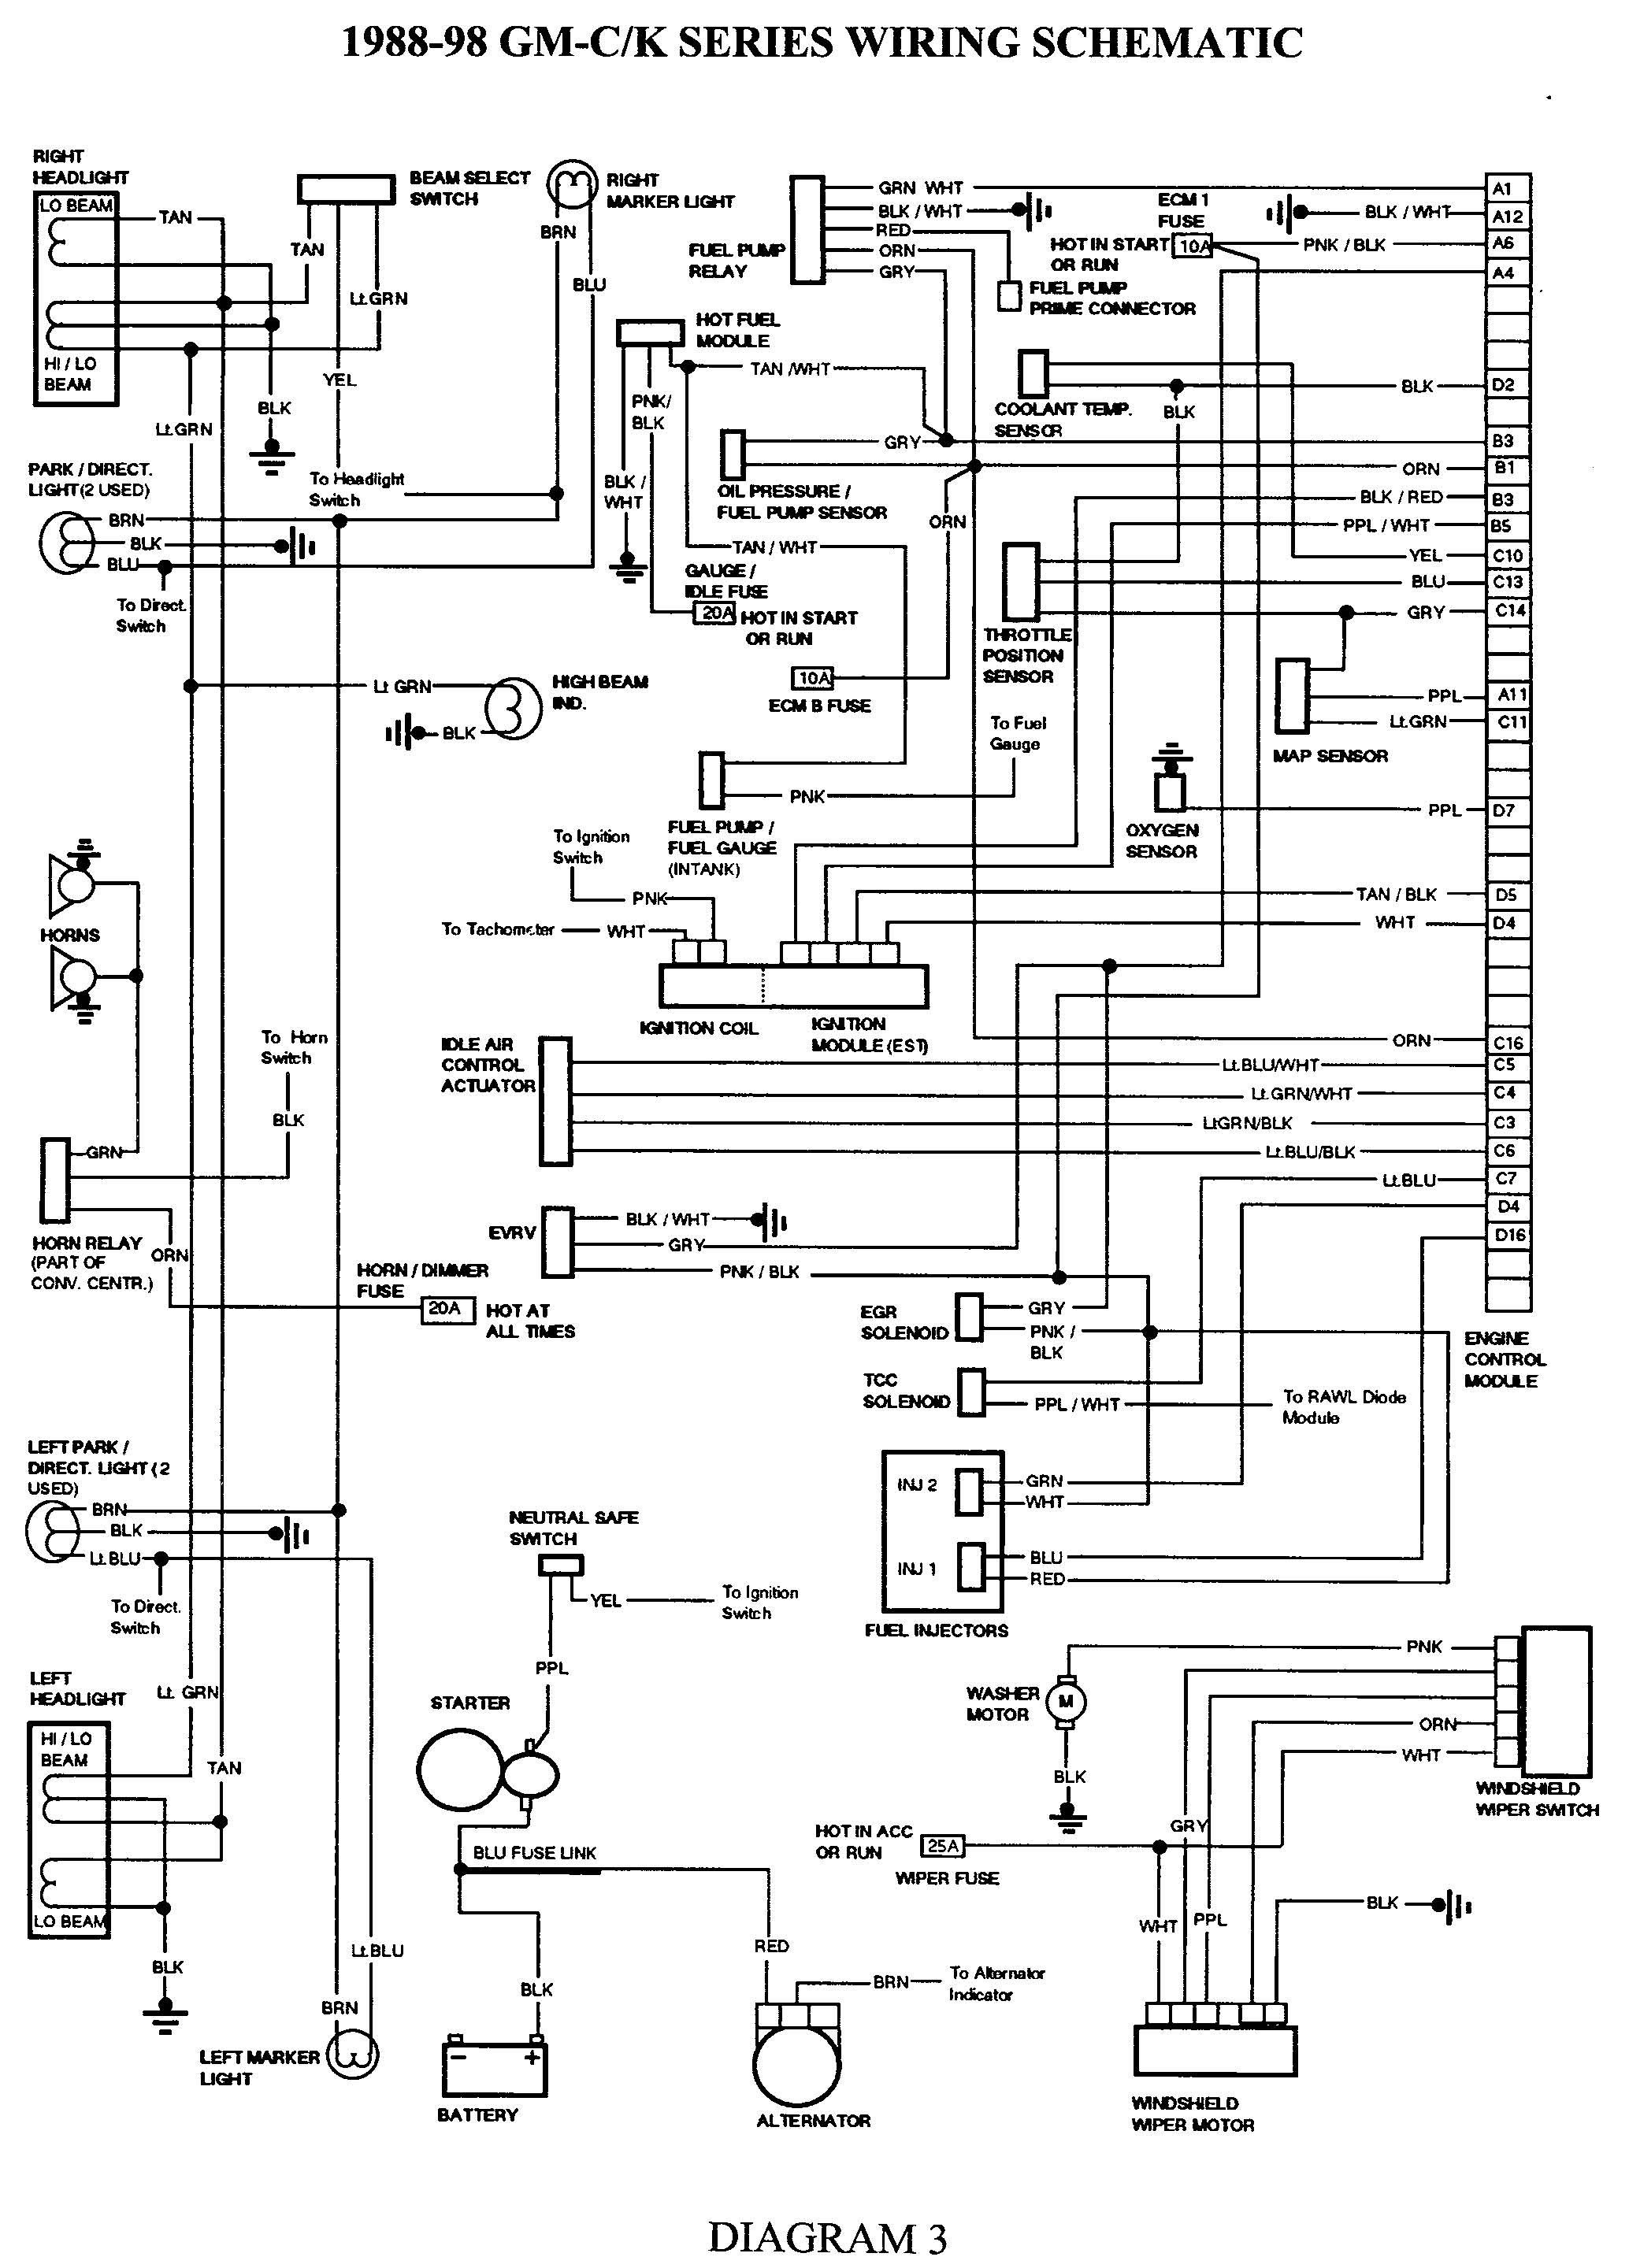 Chevy Llv Wiring Diagram   Wiring Diagram Replace dare expect ...